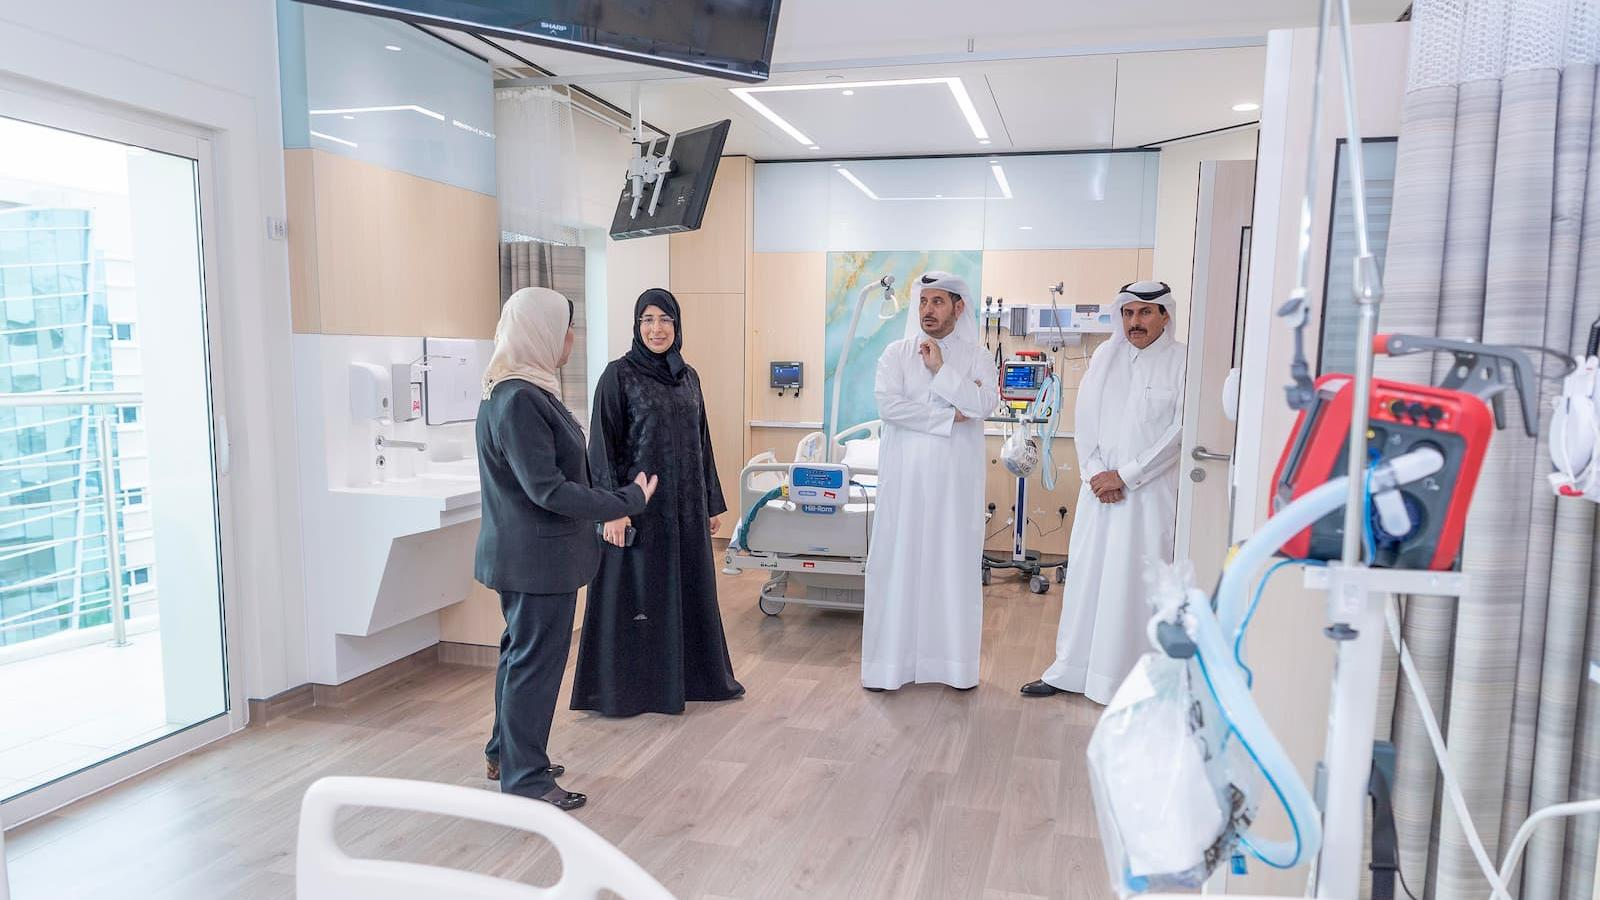 PM opens HMC's specialized care center for elderly